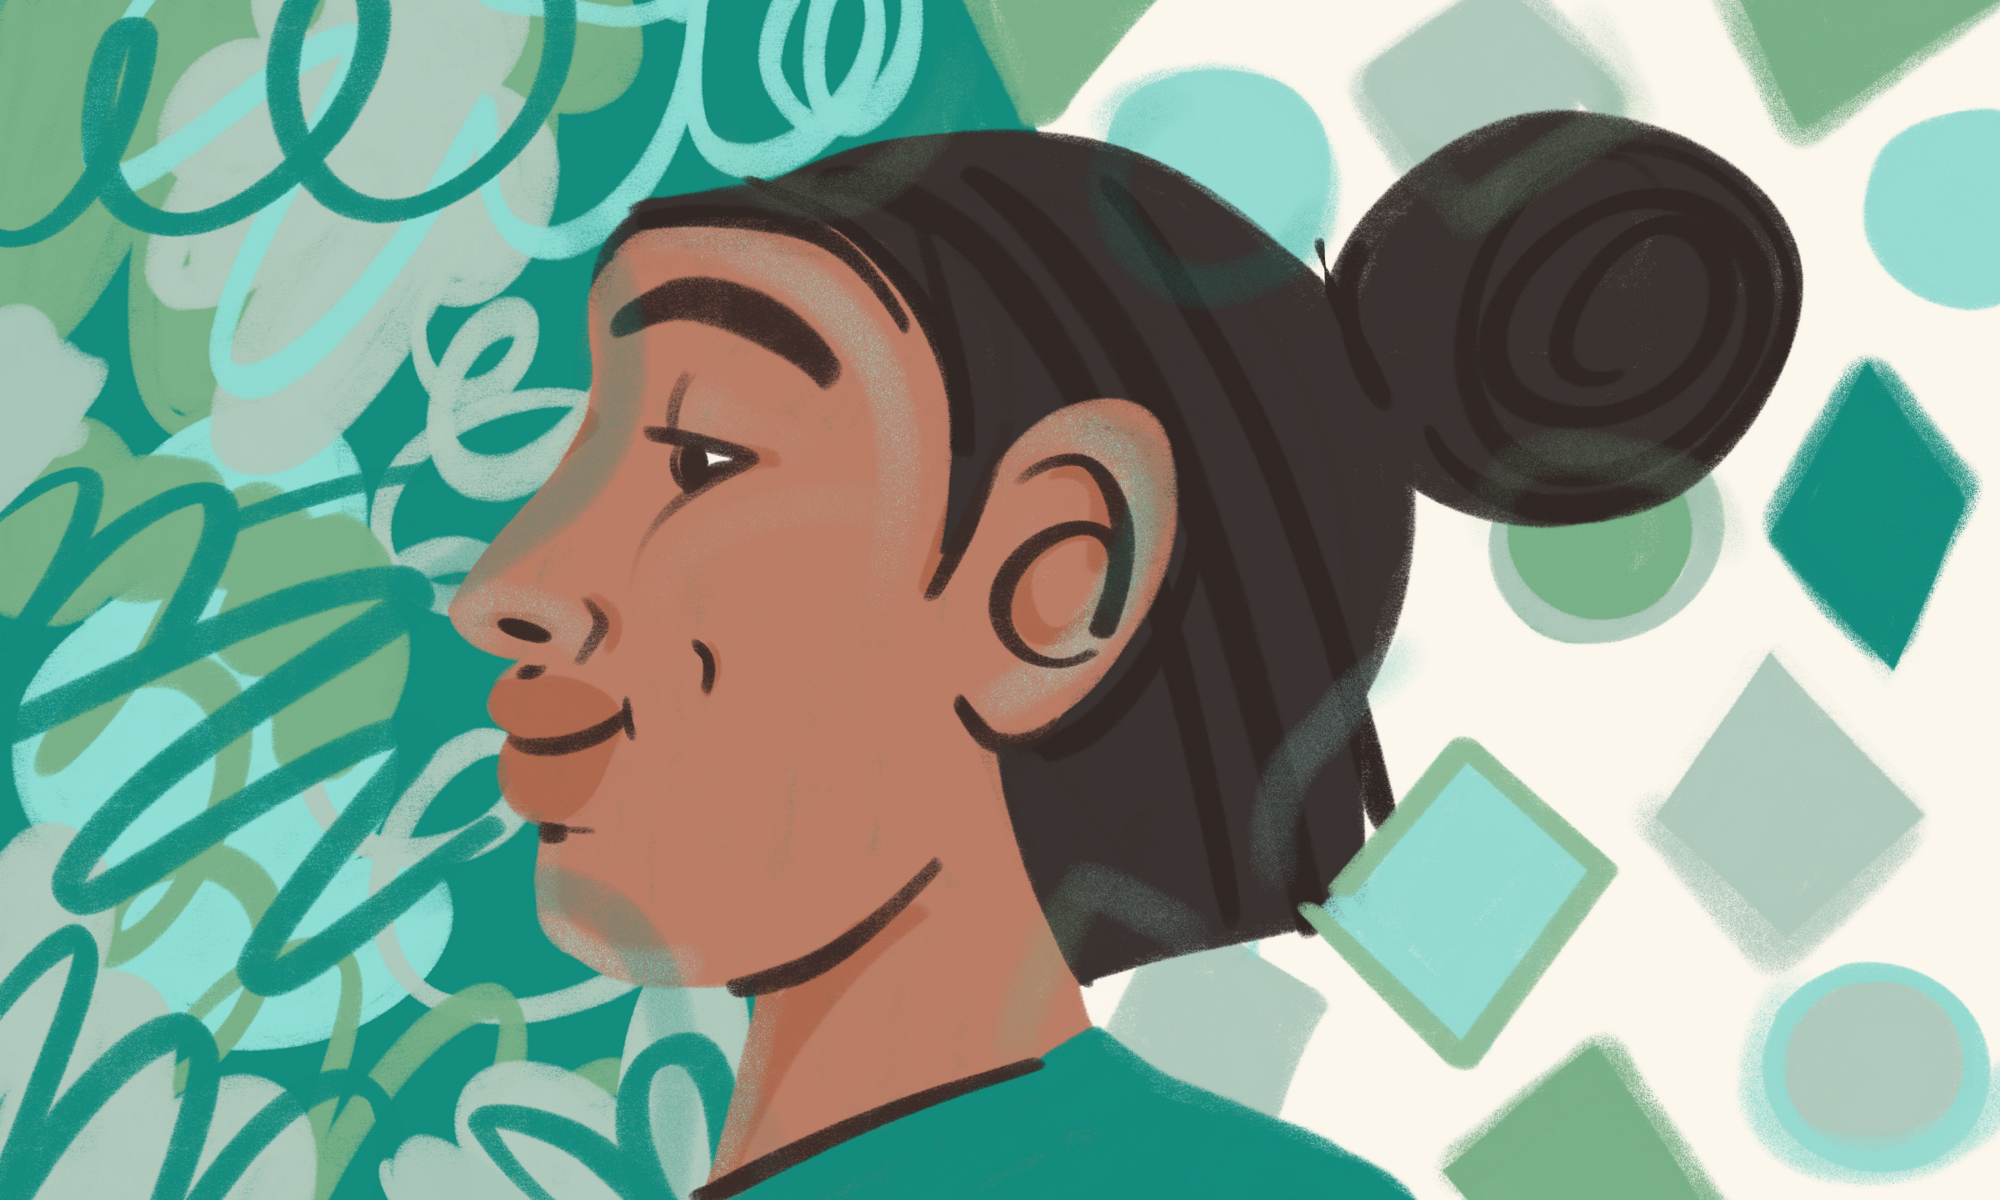 An illustration of a side-profile of a person with their hair tied up. One side on the background shows abstract swirls, and the other side shows abstract shapes.